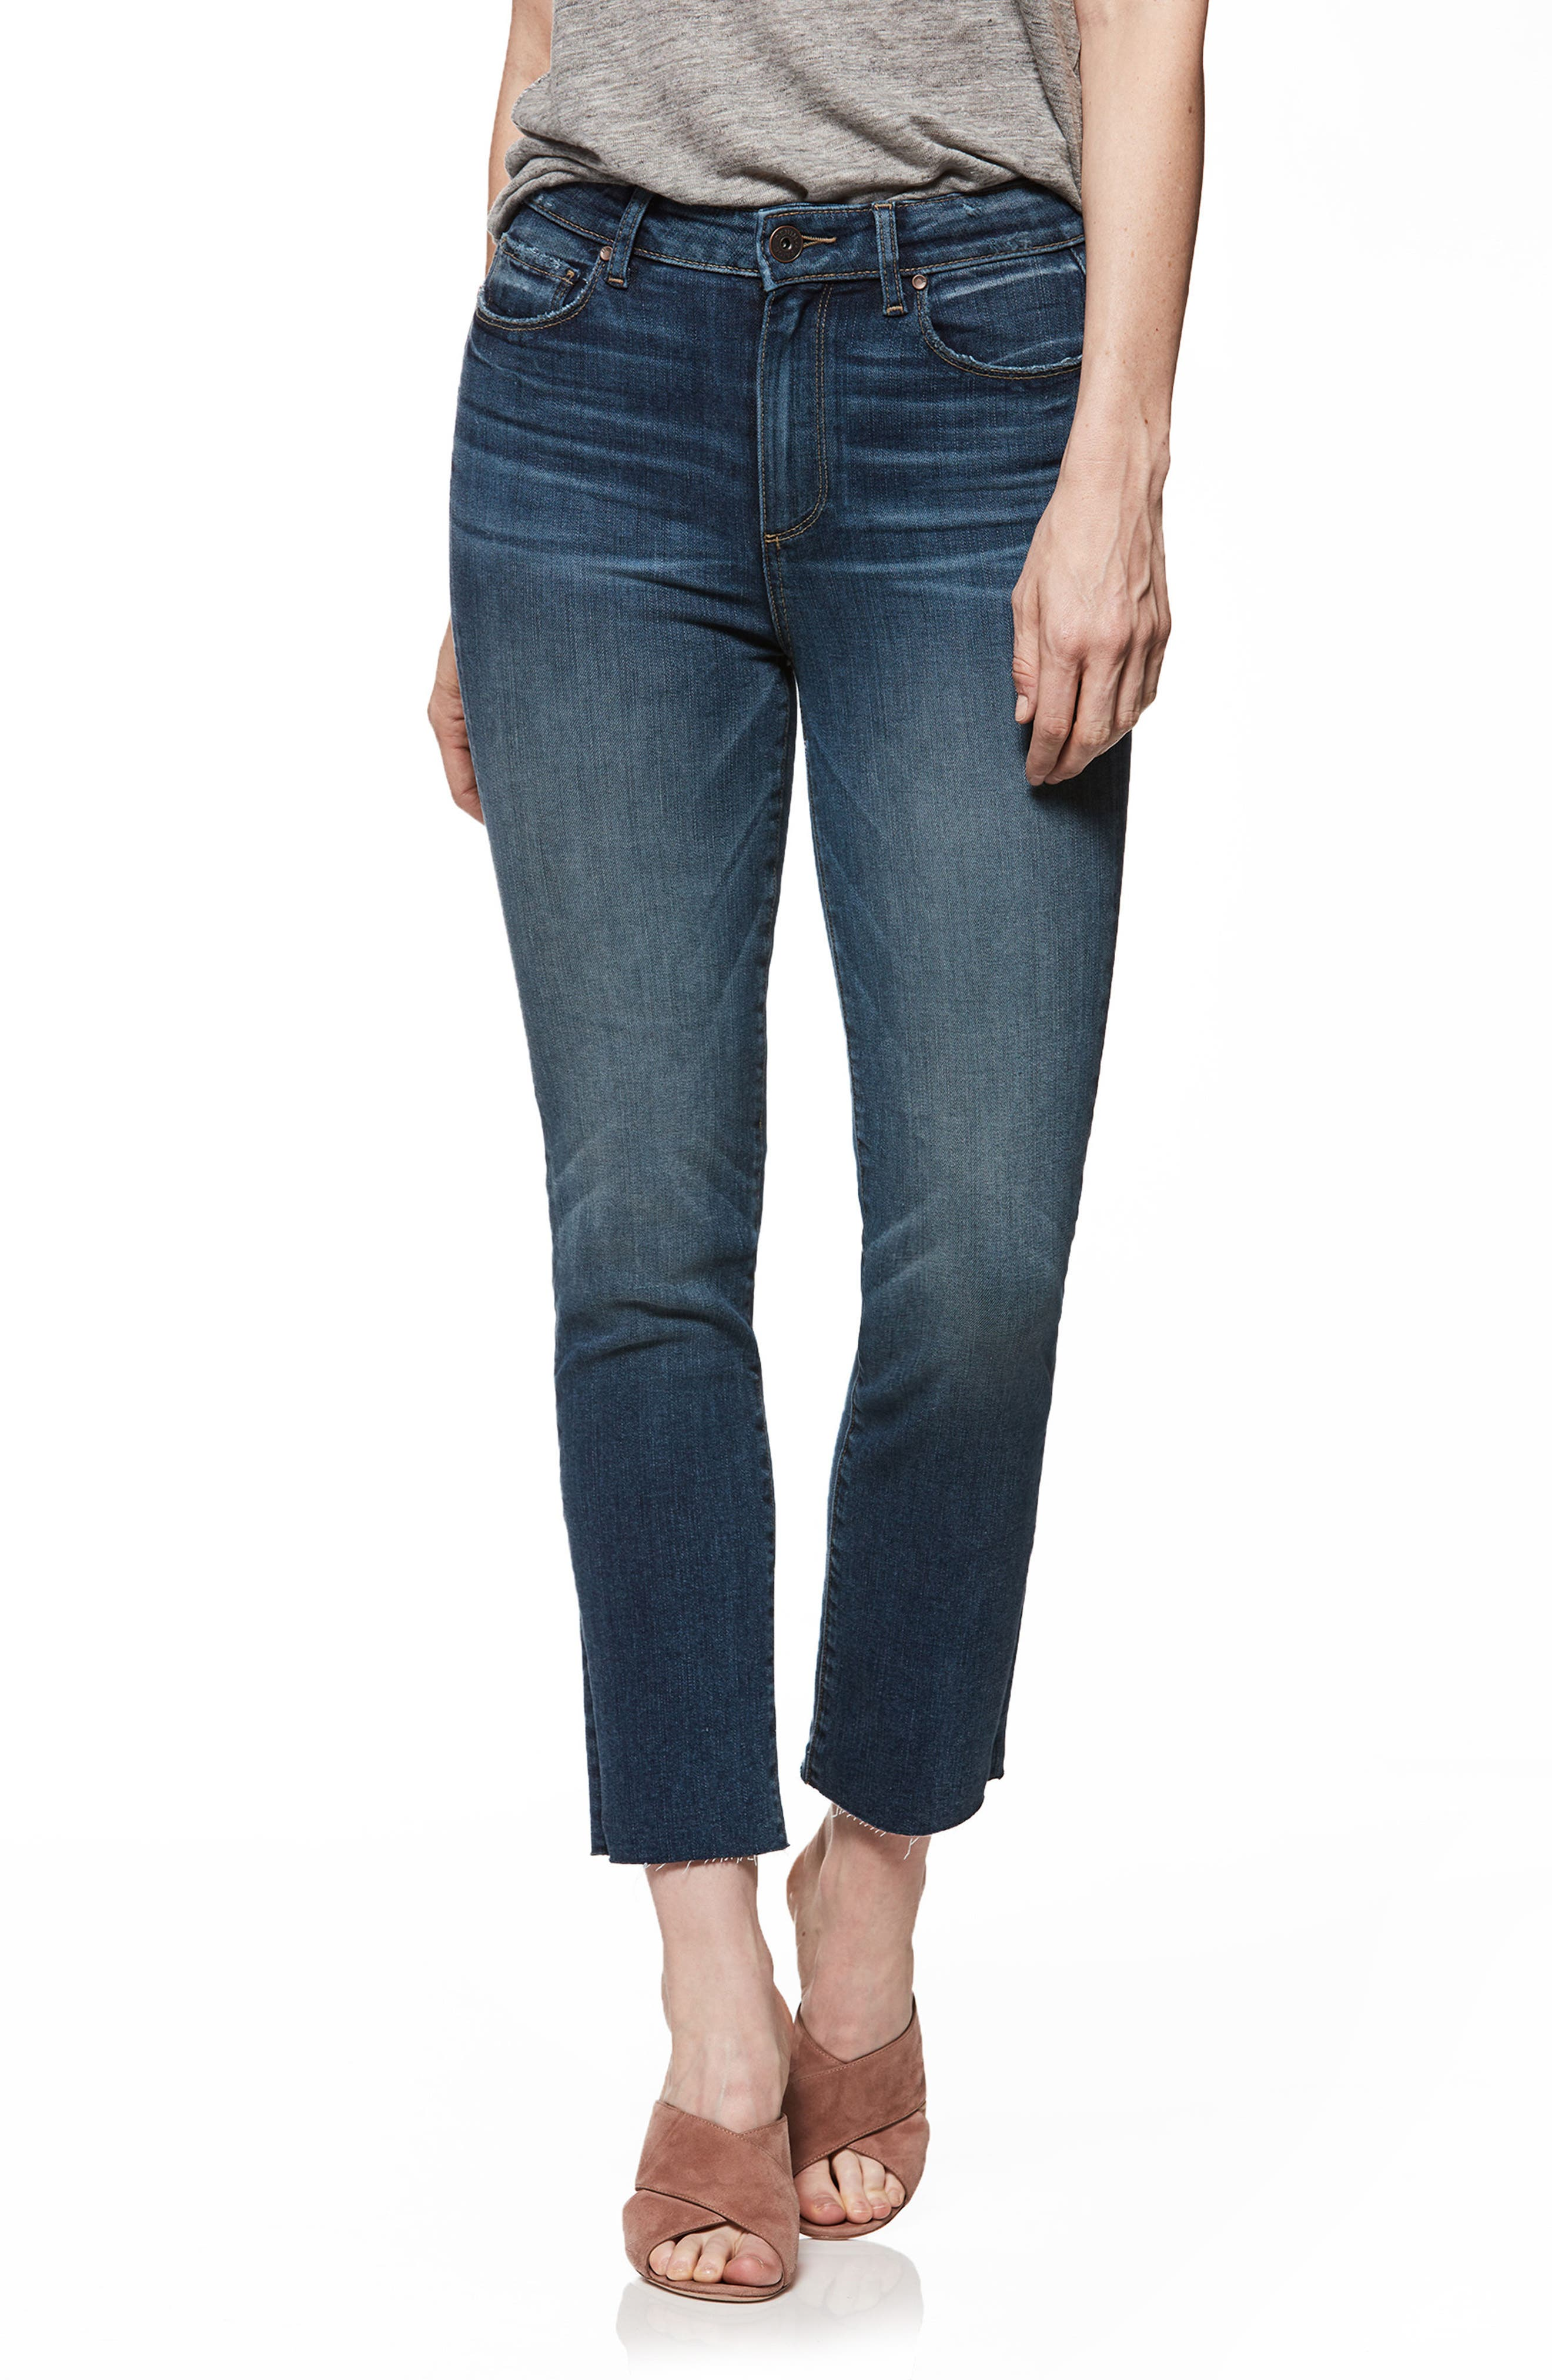 Hoxton High Waist Ankle Straight Leg Jeans,                         Main,                         color, India